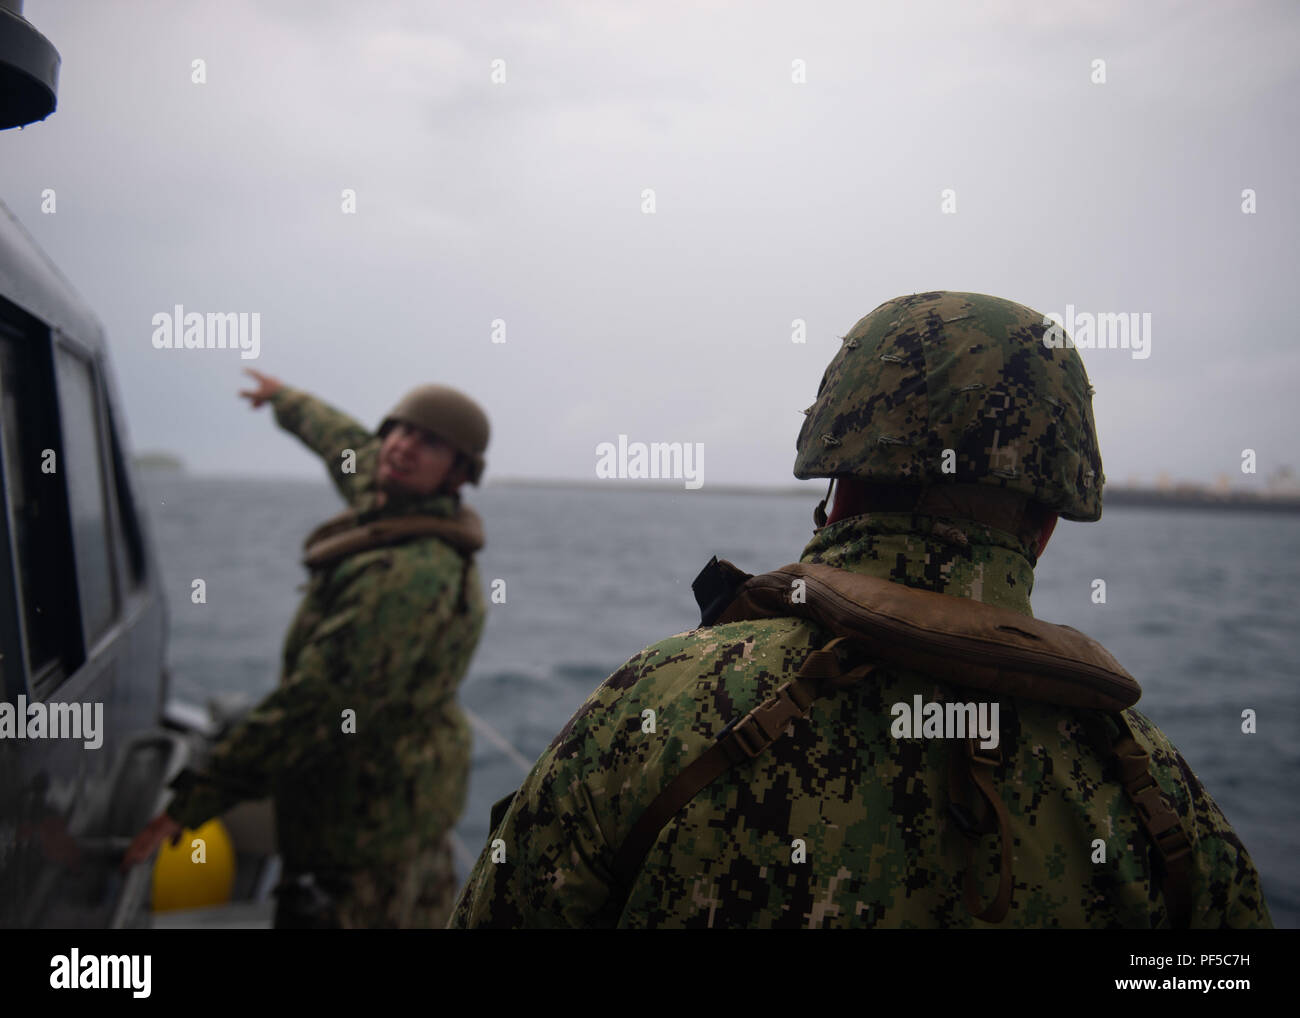 Hull Technician 2nd Class Tim Salyer, left, and Gunner's Mate Seaman Noah Vacha, right, assigned to Coastal Riverine Squadron (CRS) 3, stand watch as lookouts on a Mark VI patrol boat assigned to Coastal Riverine Group (CRG) 1 Det. Guam, in Apra Harbor Aug. 16, 2018. CRG 1 Det. Guam conducts maritime security operations across the full spectrum of naval, joint and combined operations providing additional capabilities of port security, embarked security, and theater security cooperation.  CRG 1 Det. Guam is assigned to Commander, Task Force (CTF) 75, the primary expeditionary task force respons - Stock Image